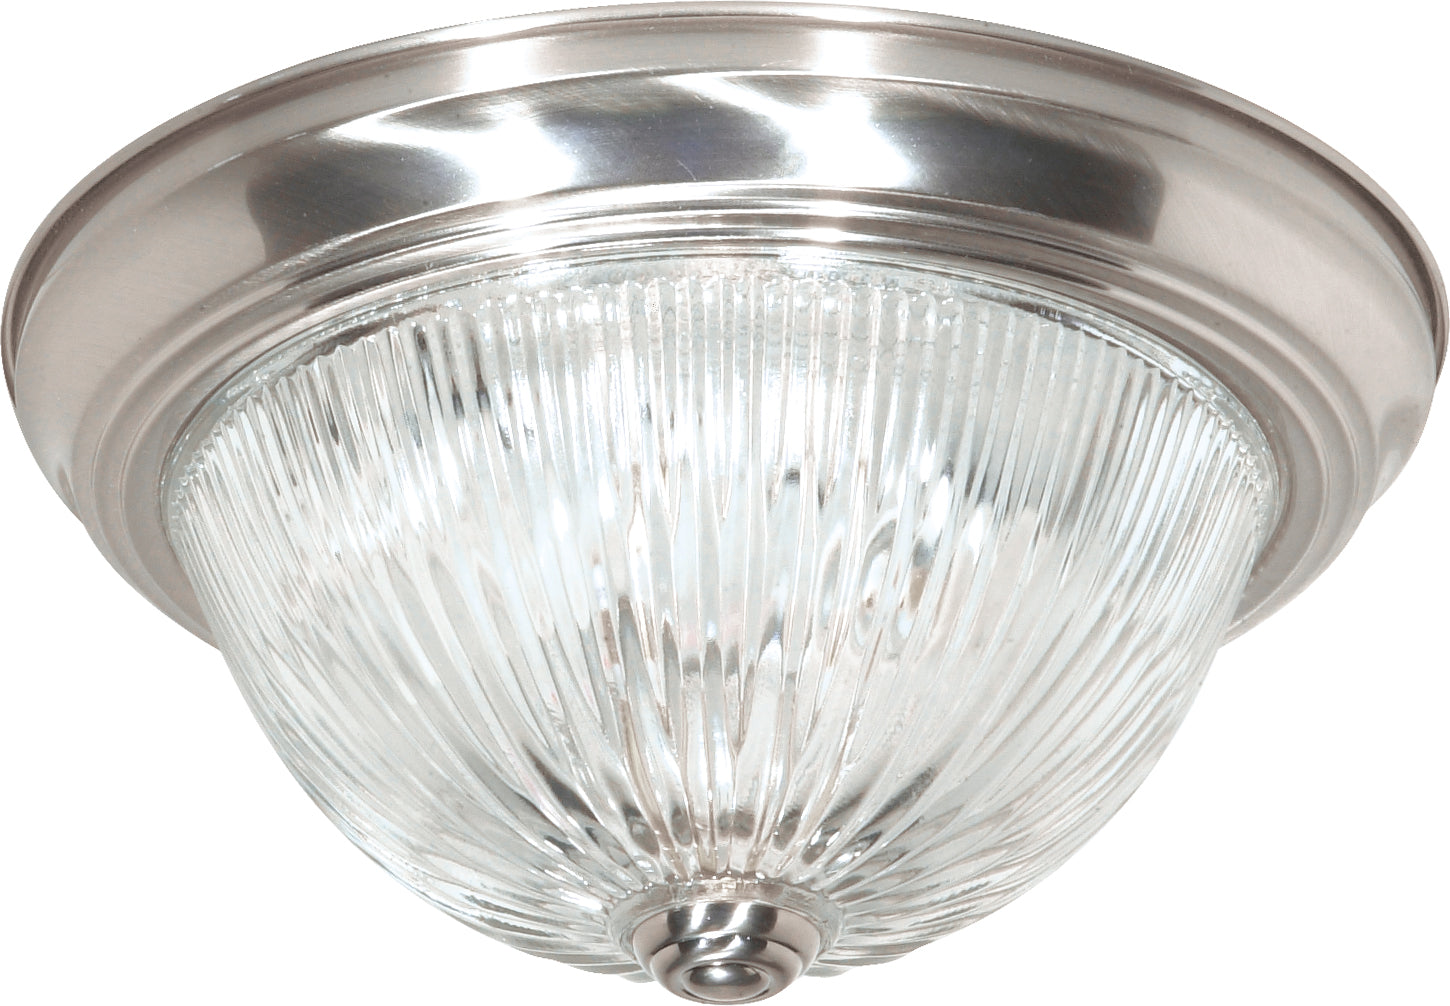 """Nuvo 2-Light 11"""" Flush Mount Fixture w/ Clear Ribbed Glass in Brushed Nickel"""